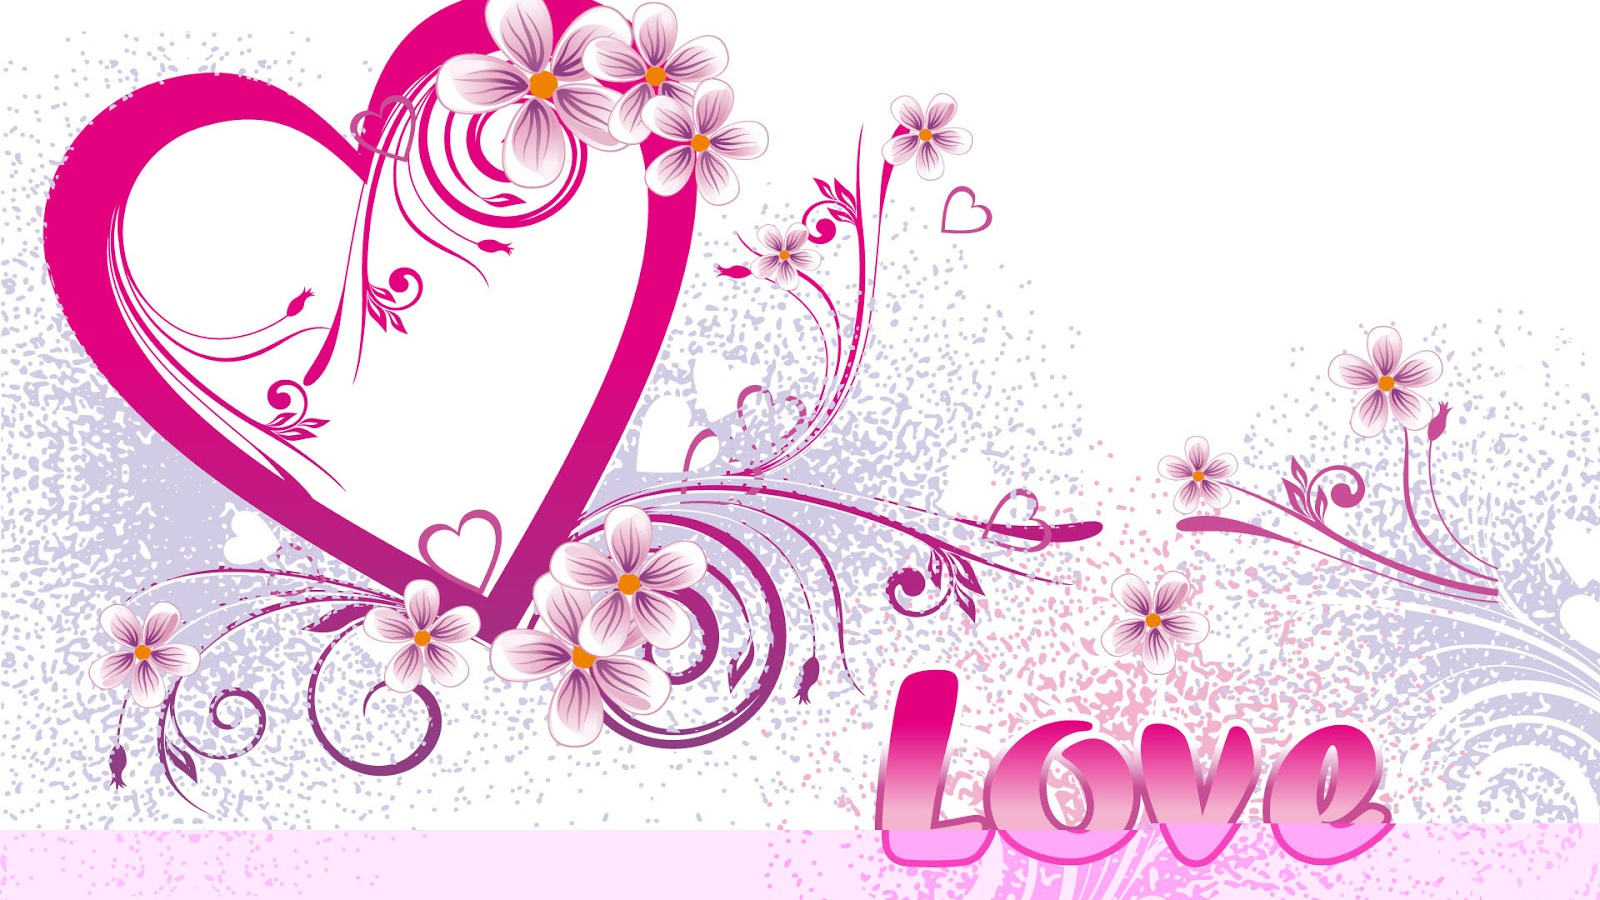 Free Download Wallpaper Backgrounds Cute Heart And Love Wallpapers